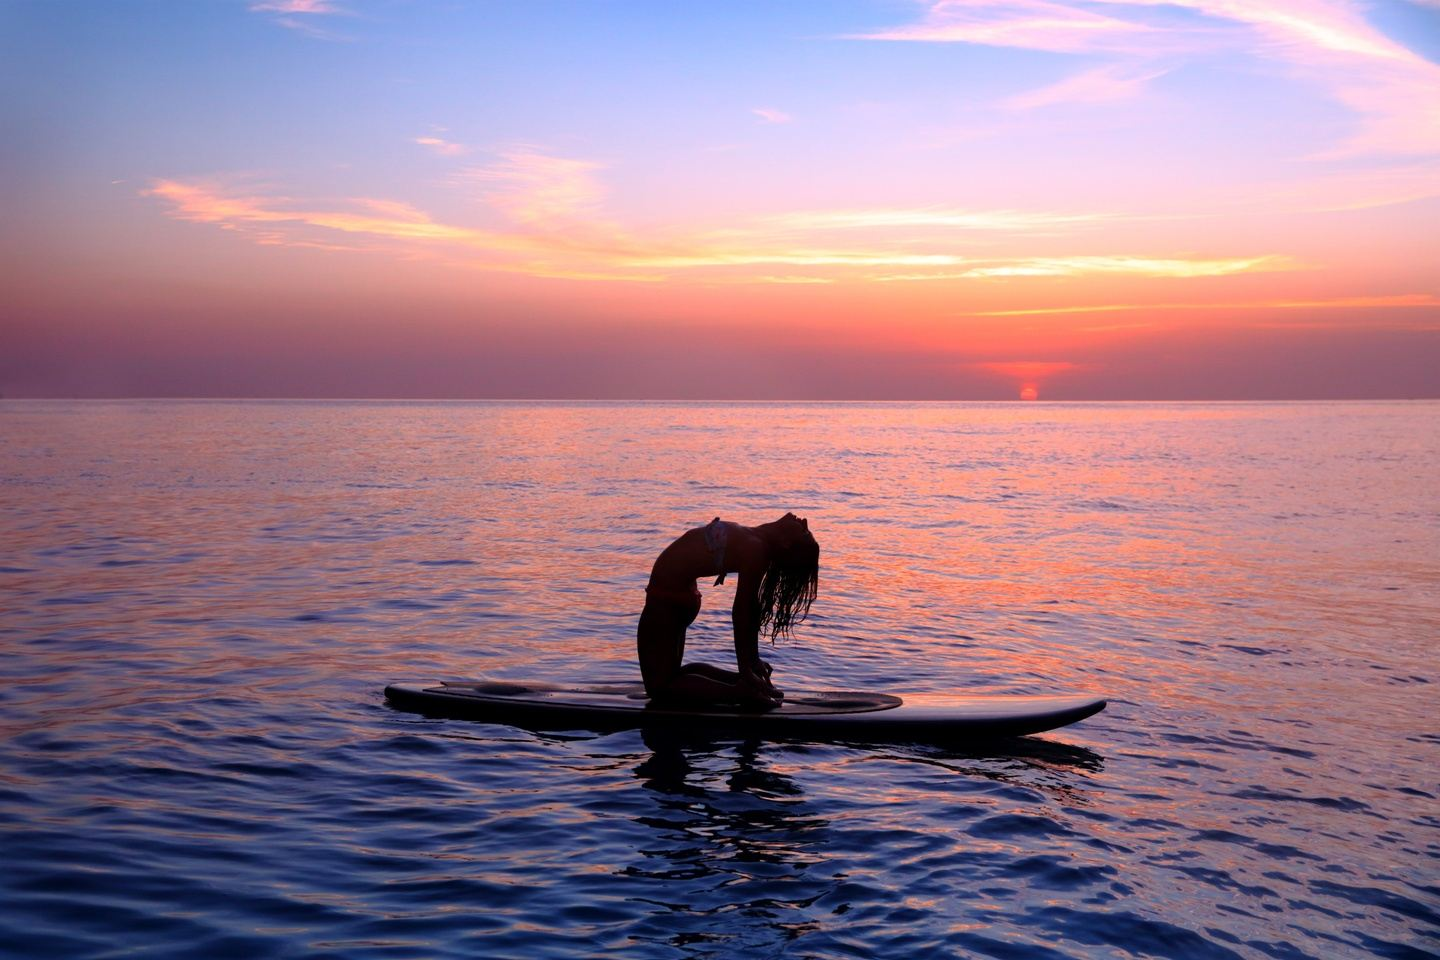 DISCOVER A HIDDEN PARADISE IN THIS 5-DAY SURF & YOGA RETREAT